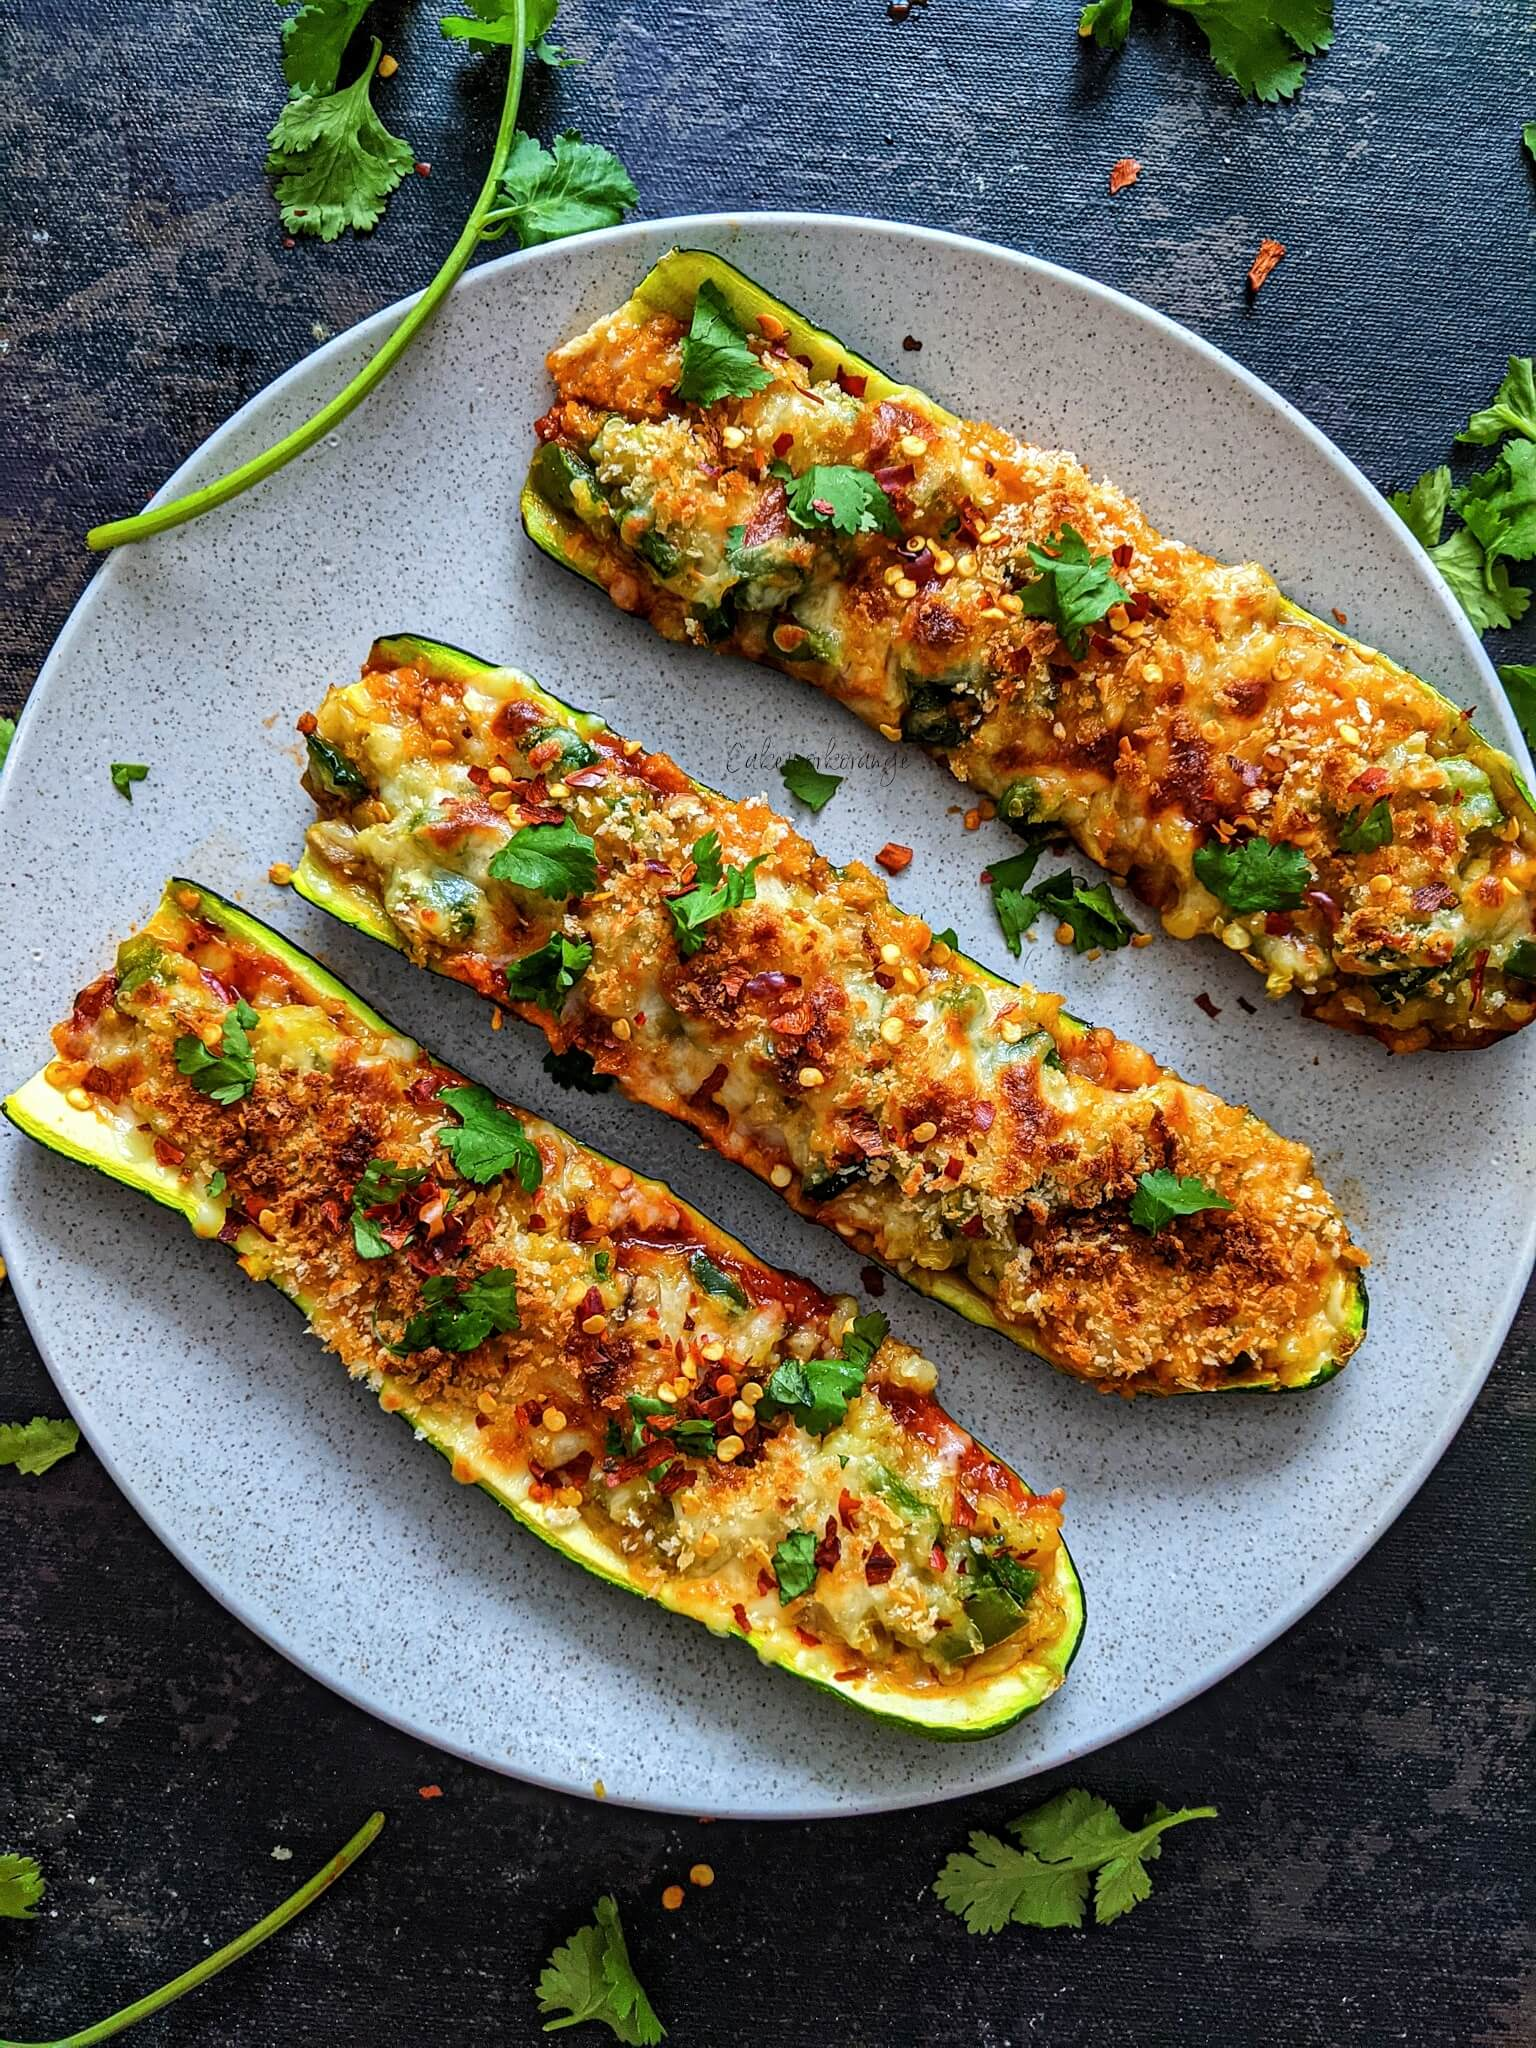 Zucchini Boats with Stuffed Vegetables